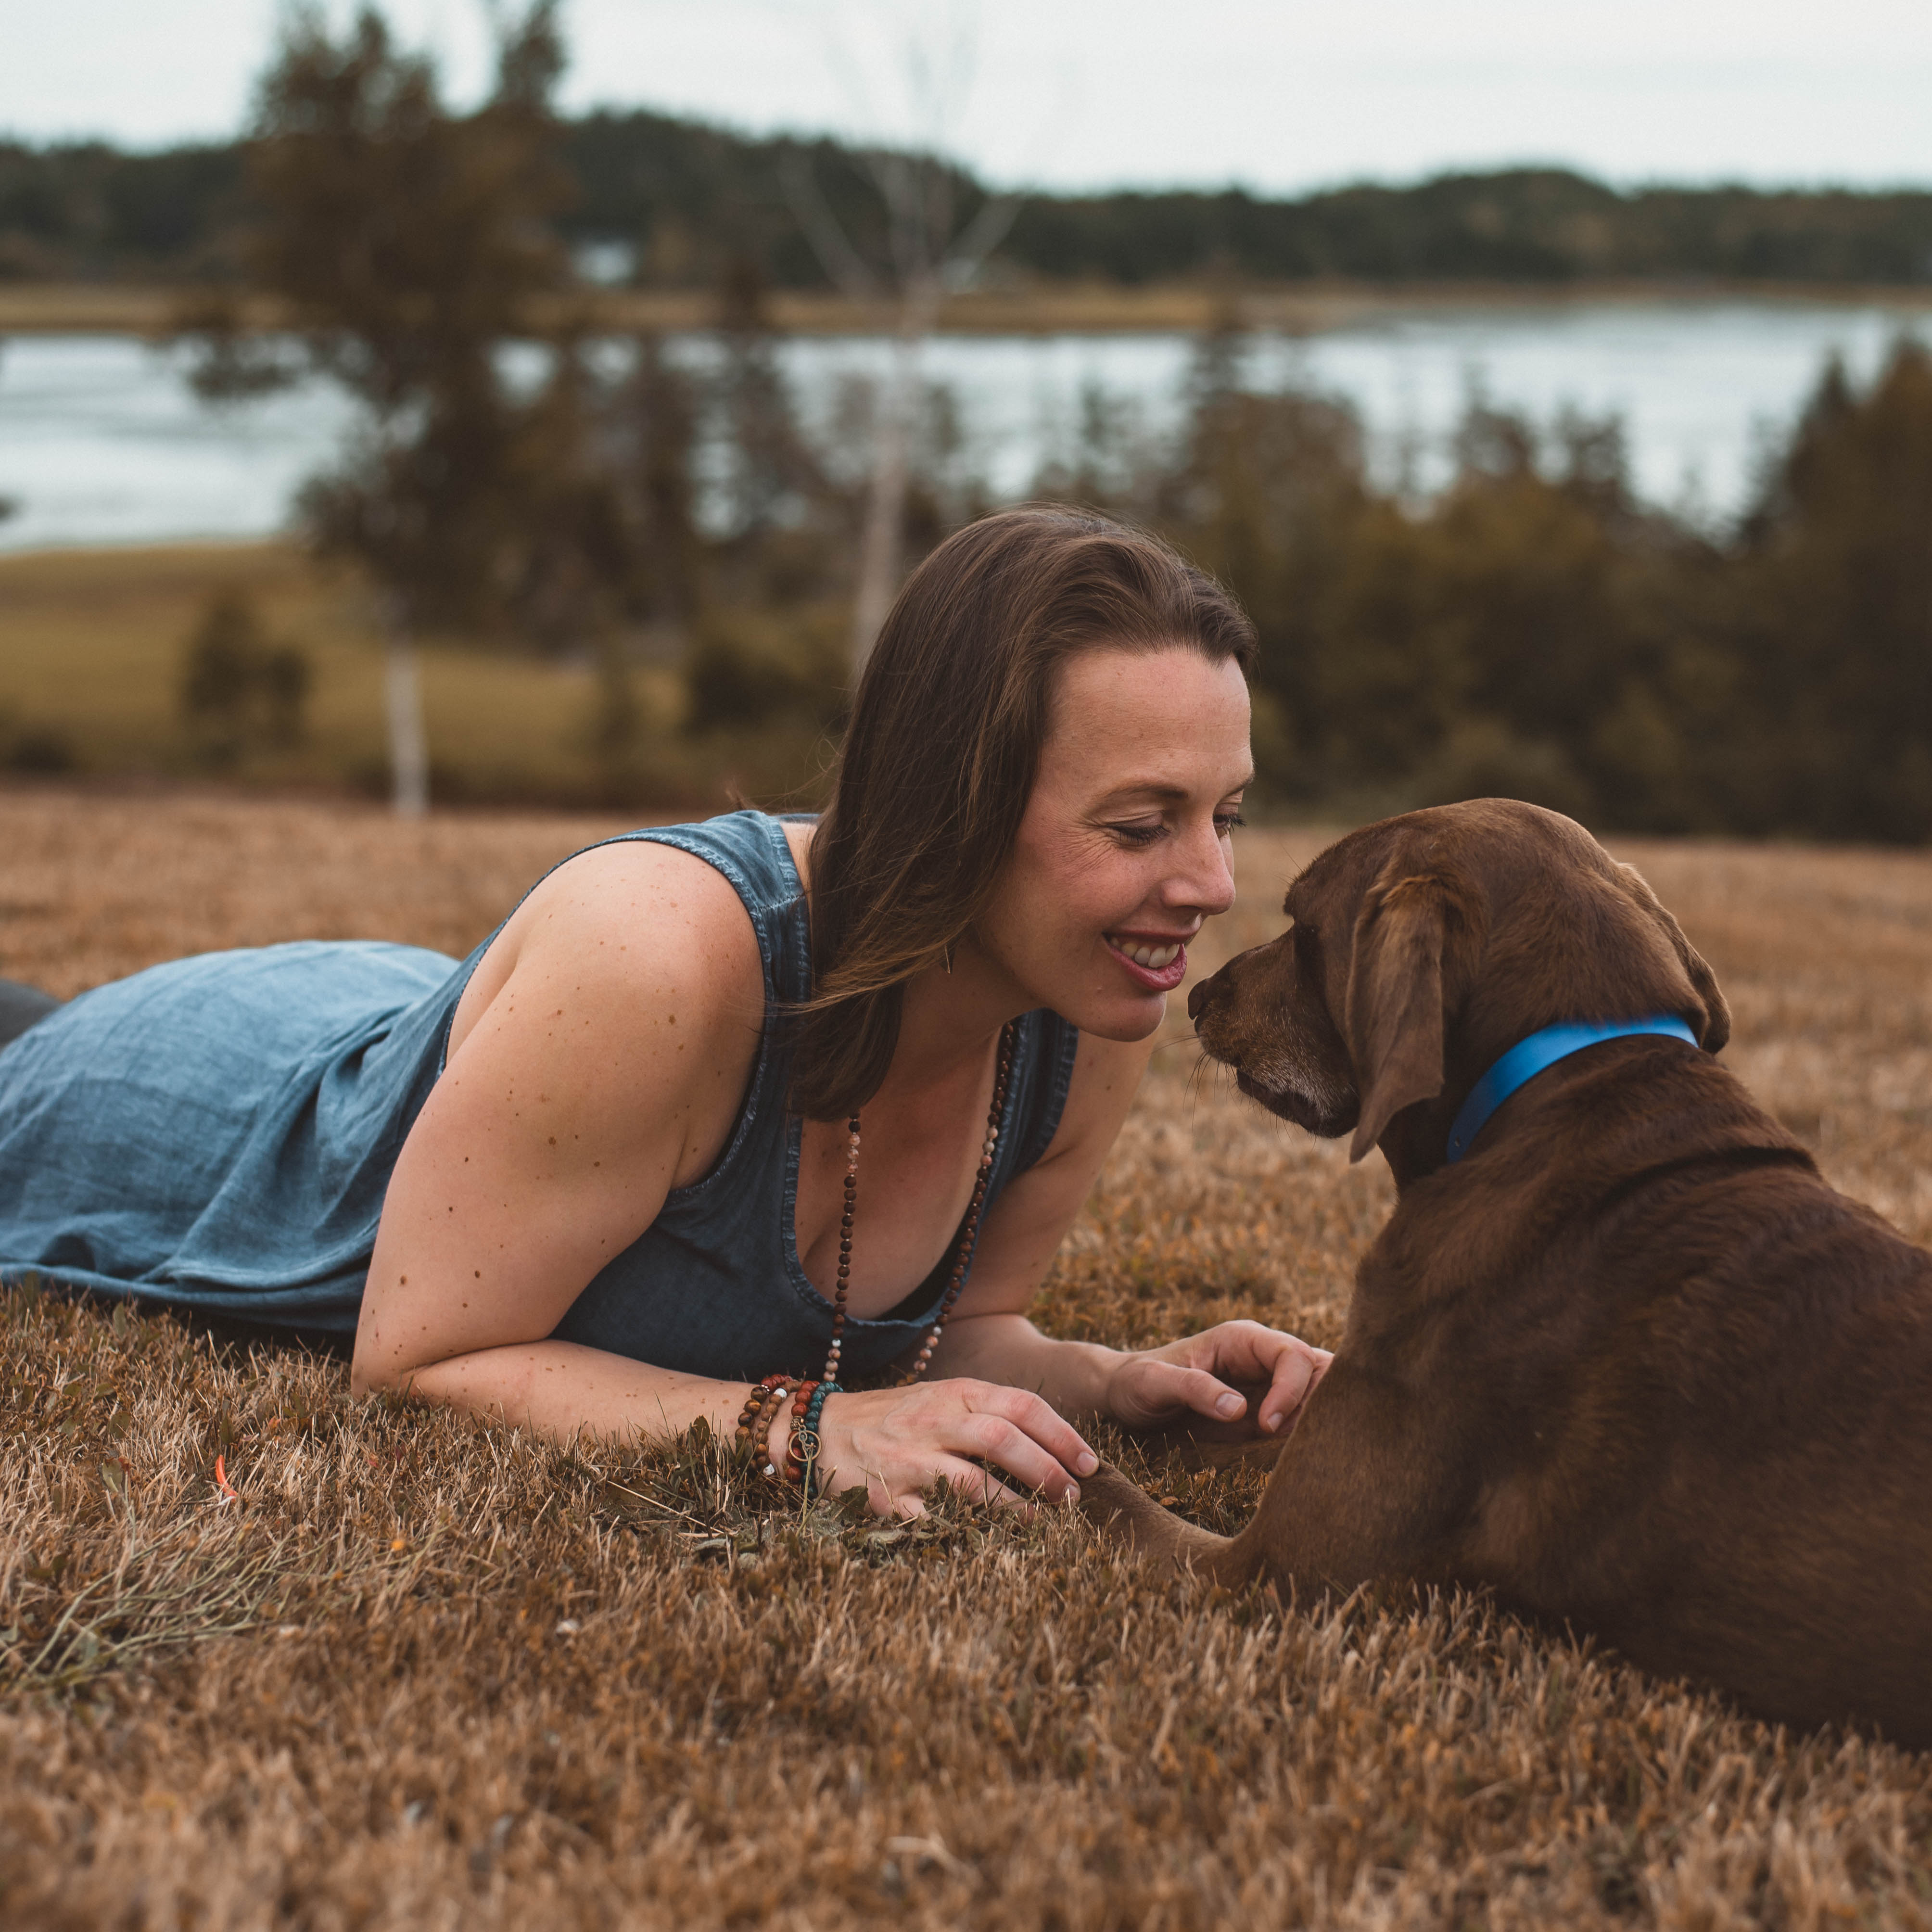 Kate looking lovingly at her chocolate brown lab, laying in the grass alongside water